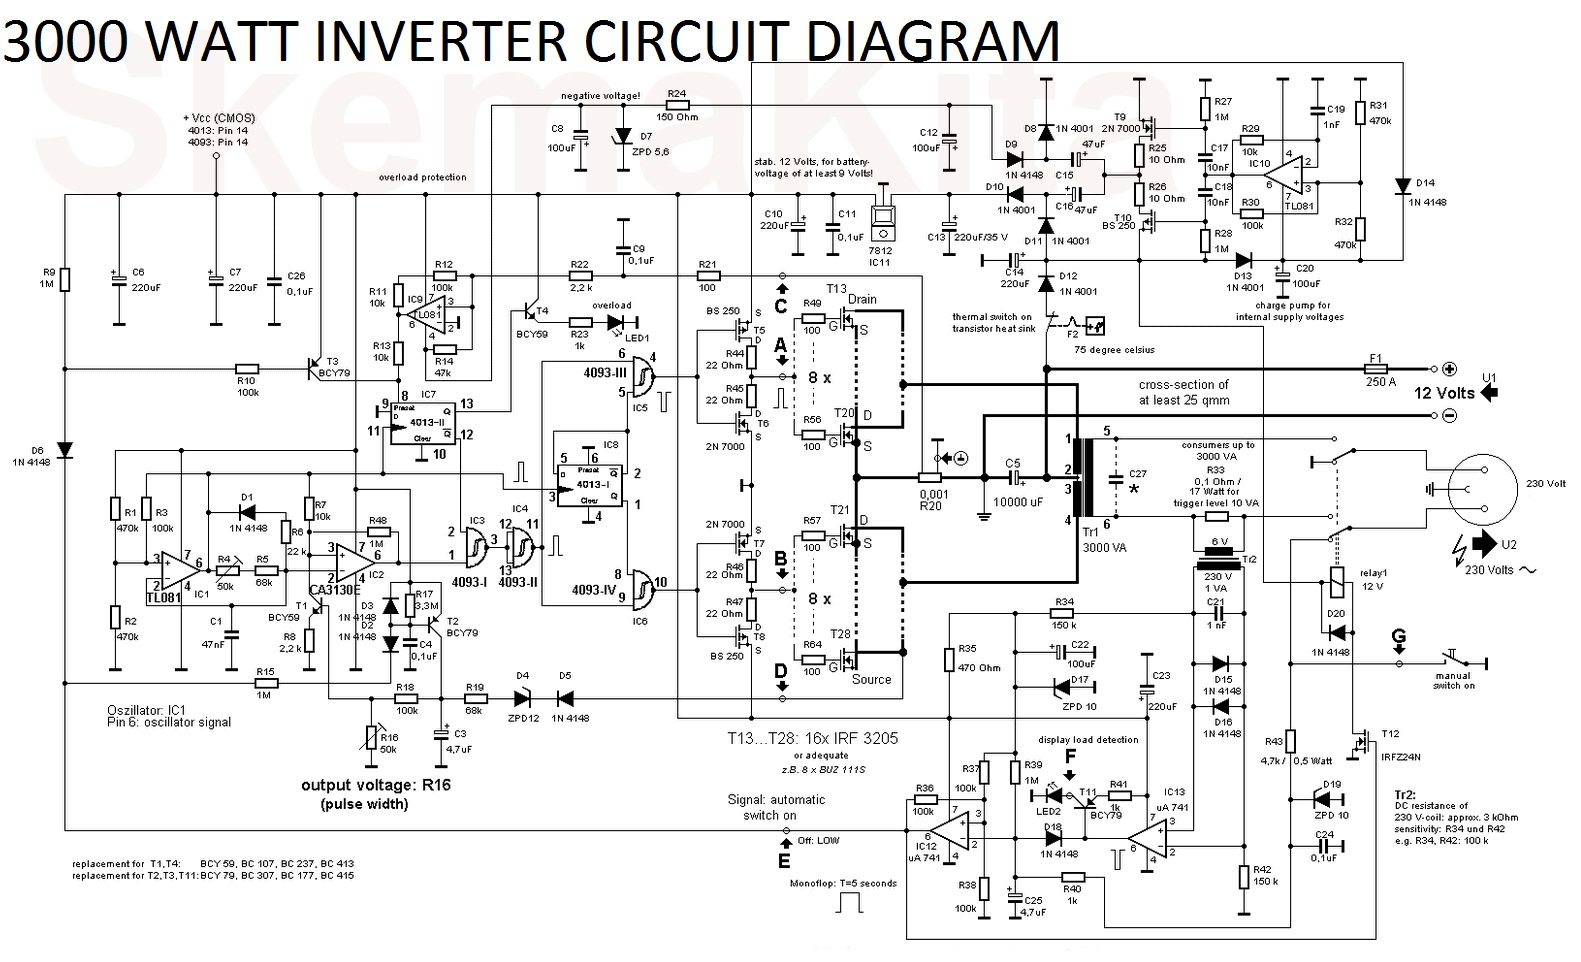 3000 watt inverter circuit diagram electronic circuit rh elcircuit com pwm inverter circuit diagram logic inverter circuit diagram